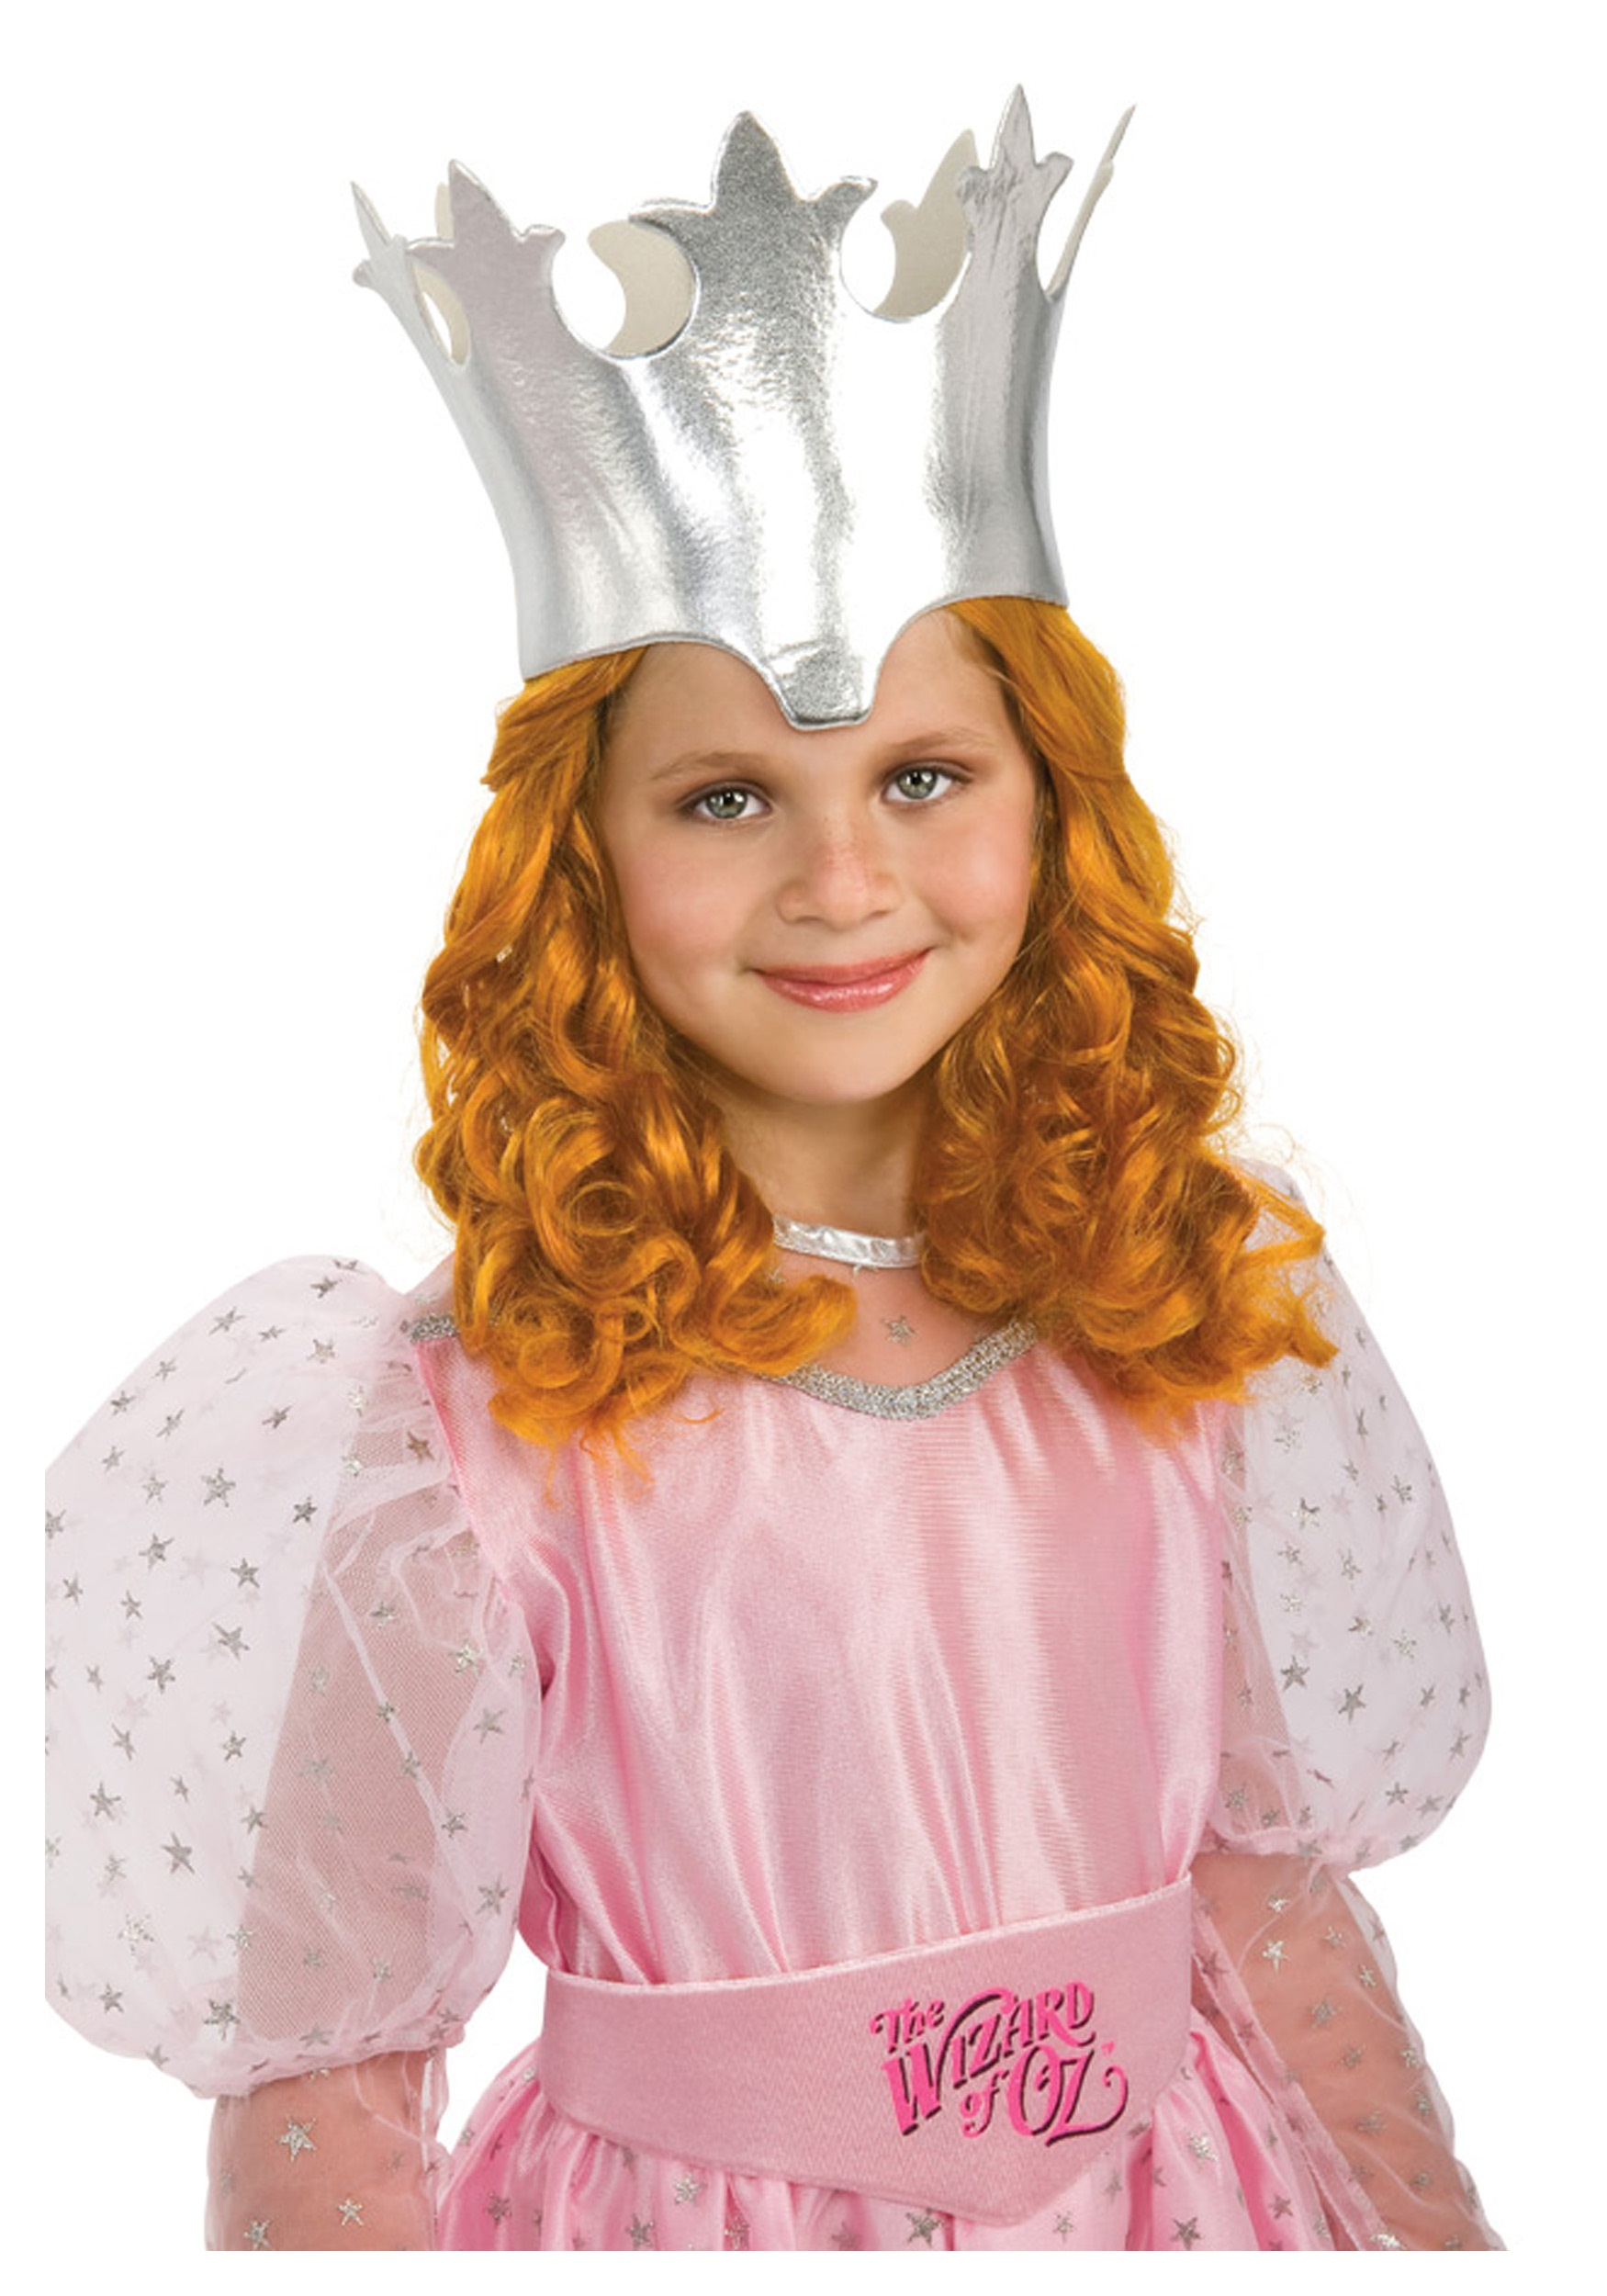 Glinda Costumes - Glinda the Good Witch Costume